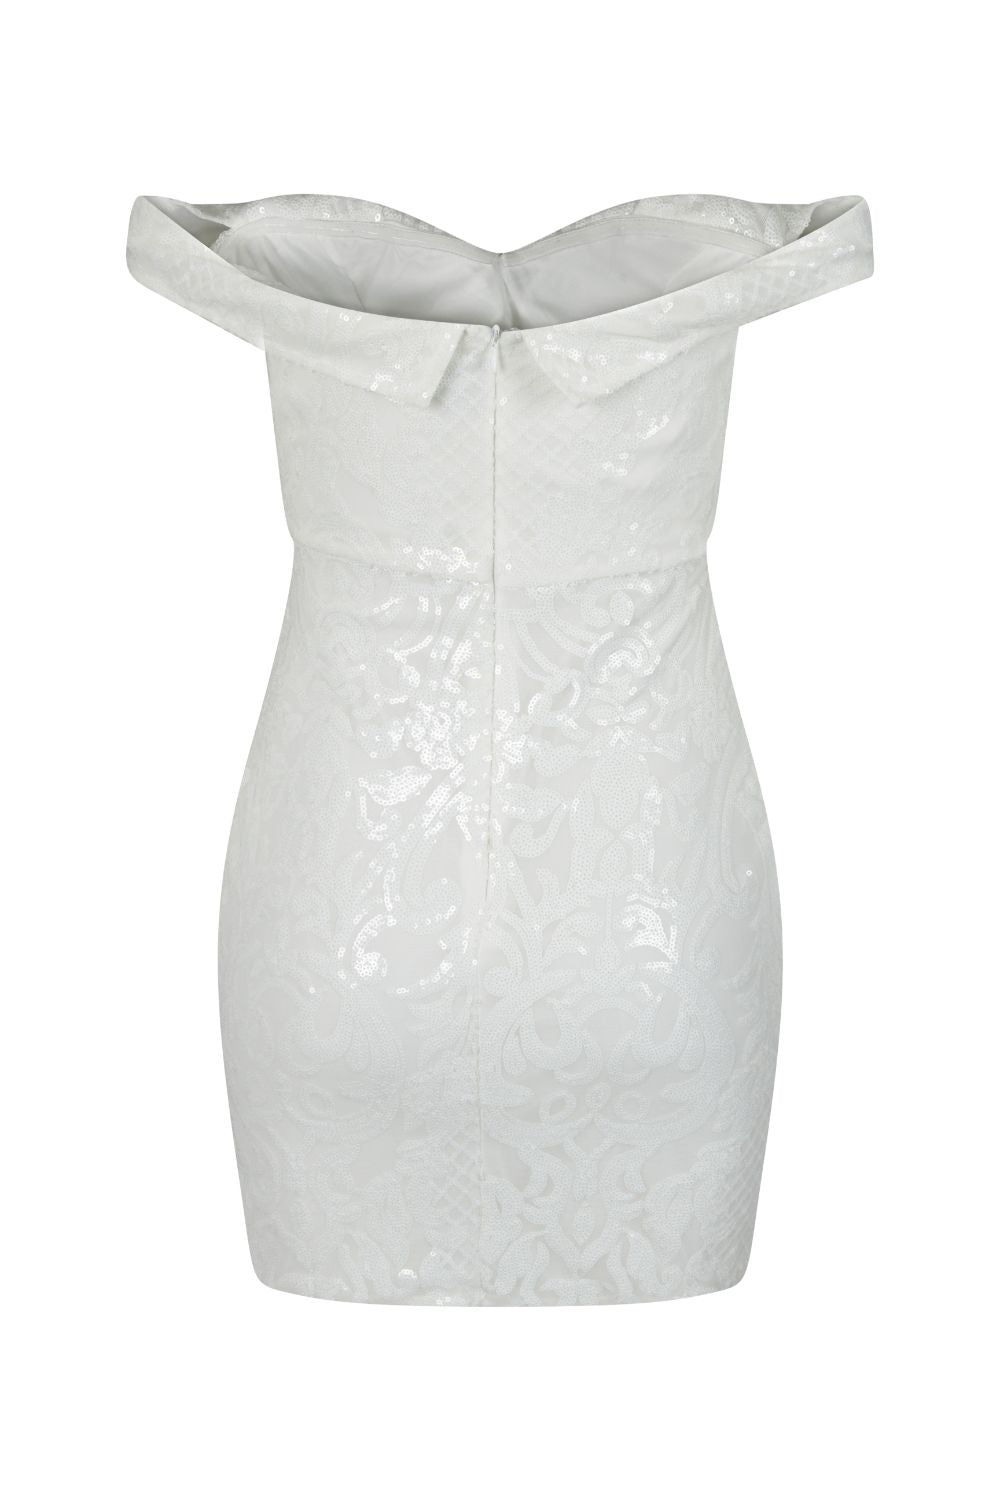 Alexiya White Bardot Sweetheart Sequin Embellished Illusion Dress